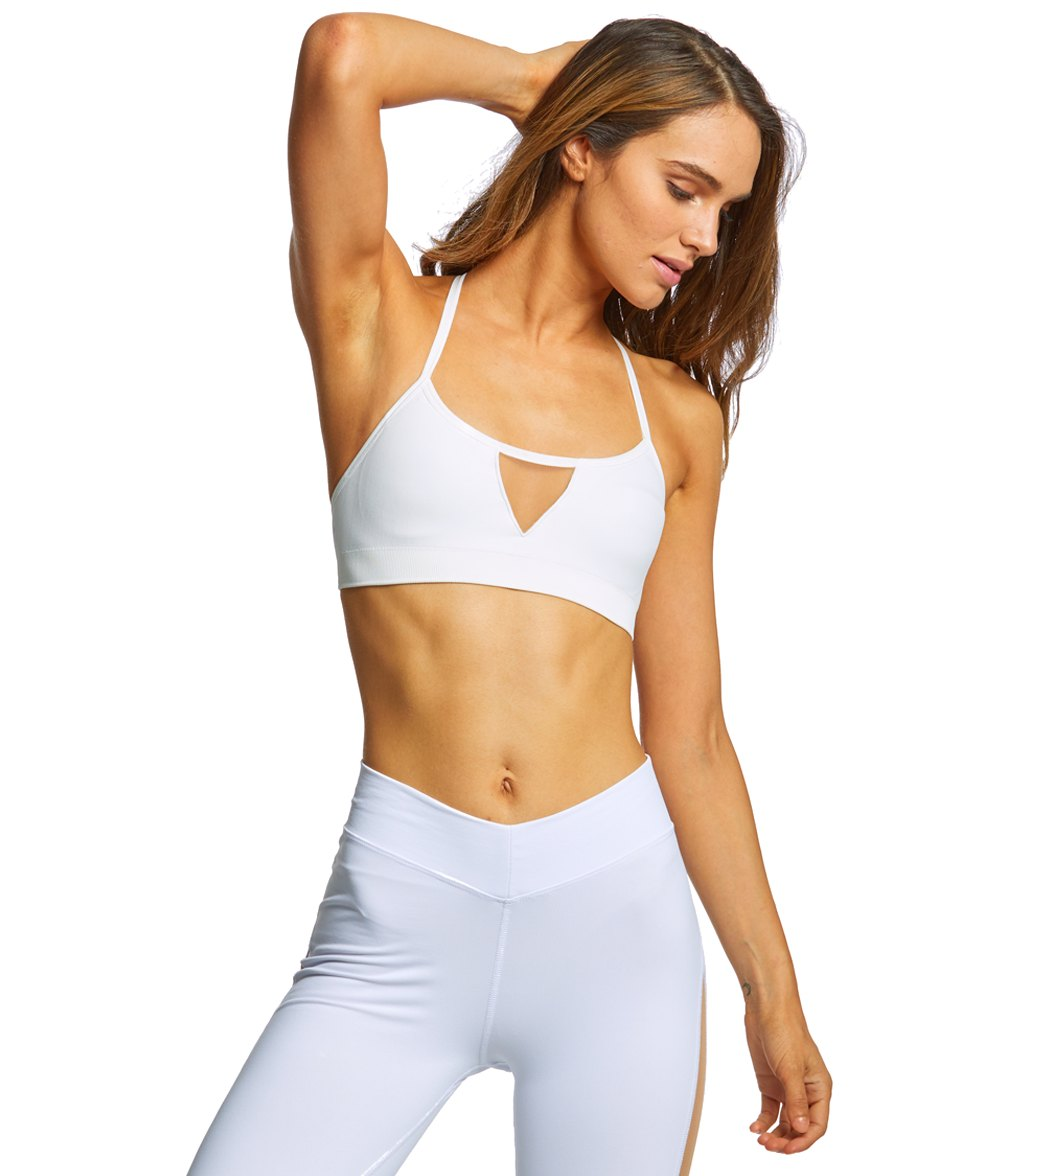 7e4315b390820 Women s Yoga Clothes · Sports Bras. Visit Product Page close X. Play Video.  Loading photo... Loading photo.